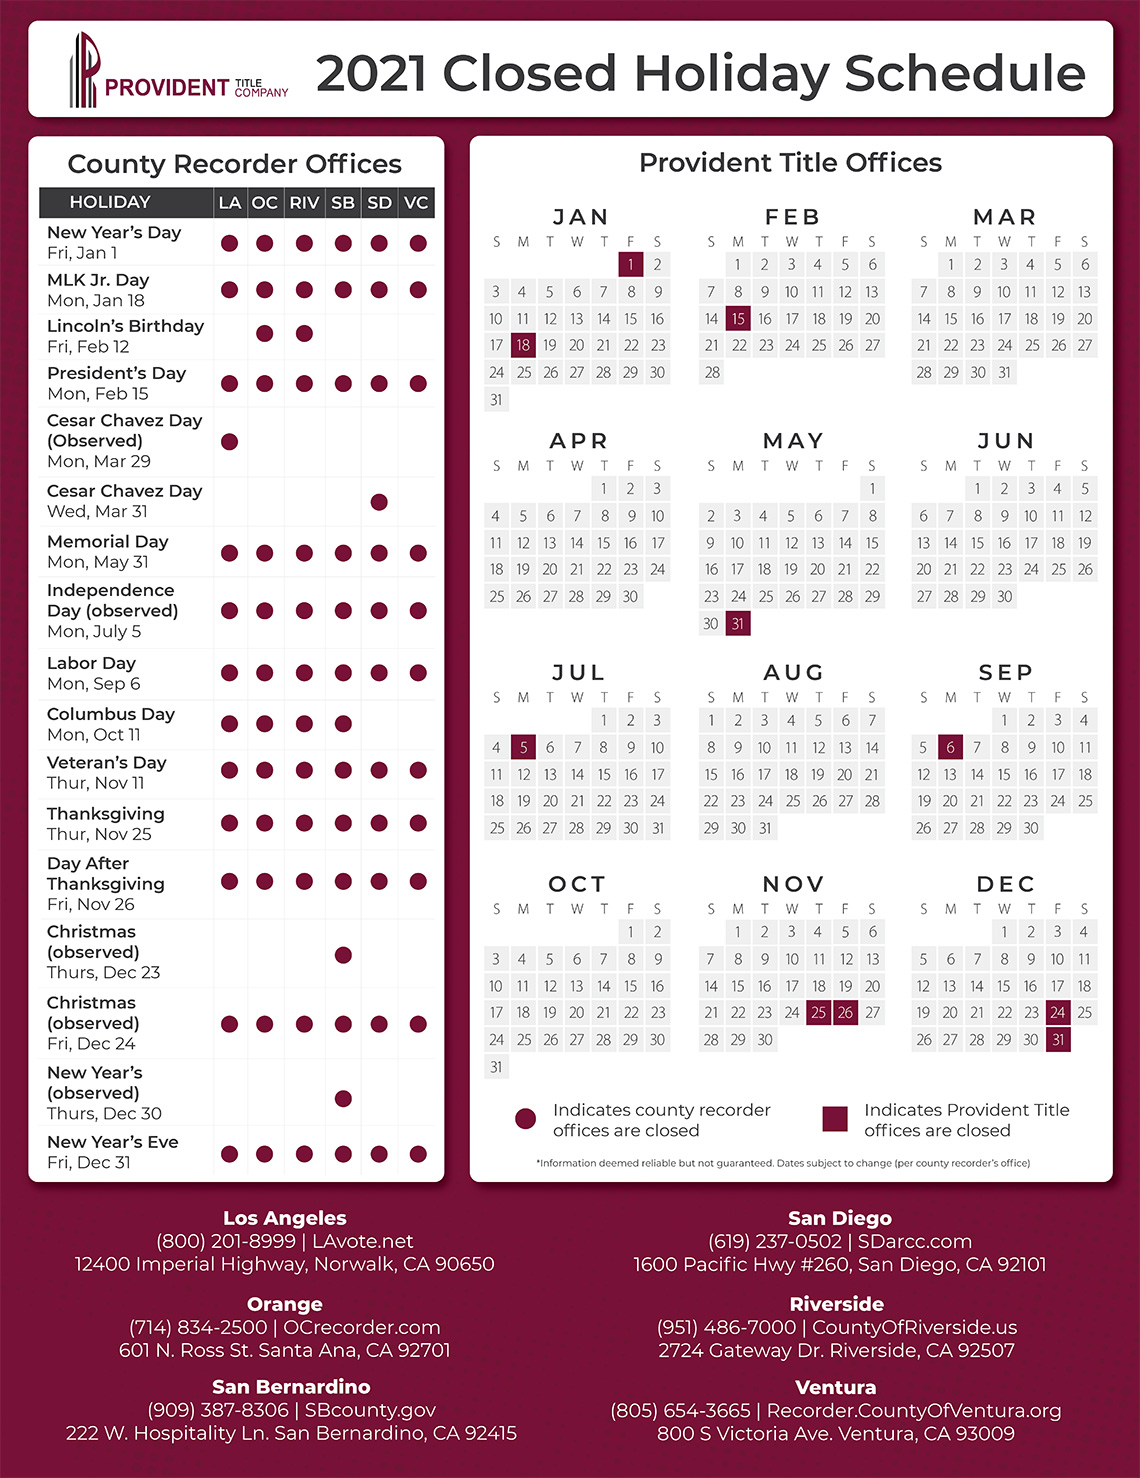 Provident Title Company 2021 Closed Holiday Schedule